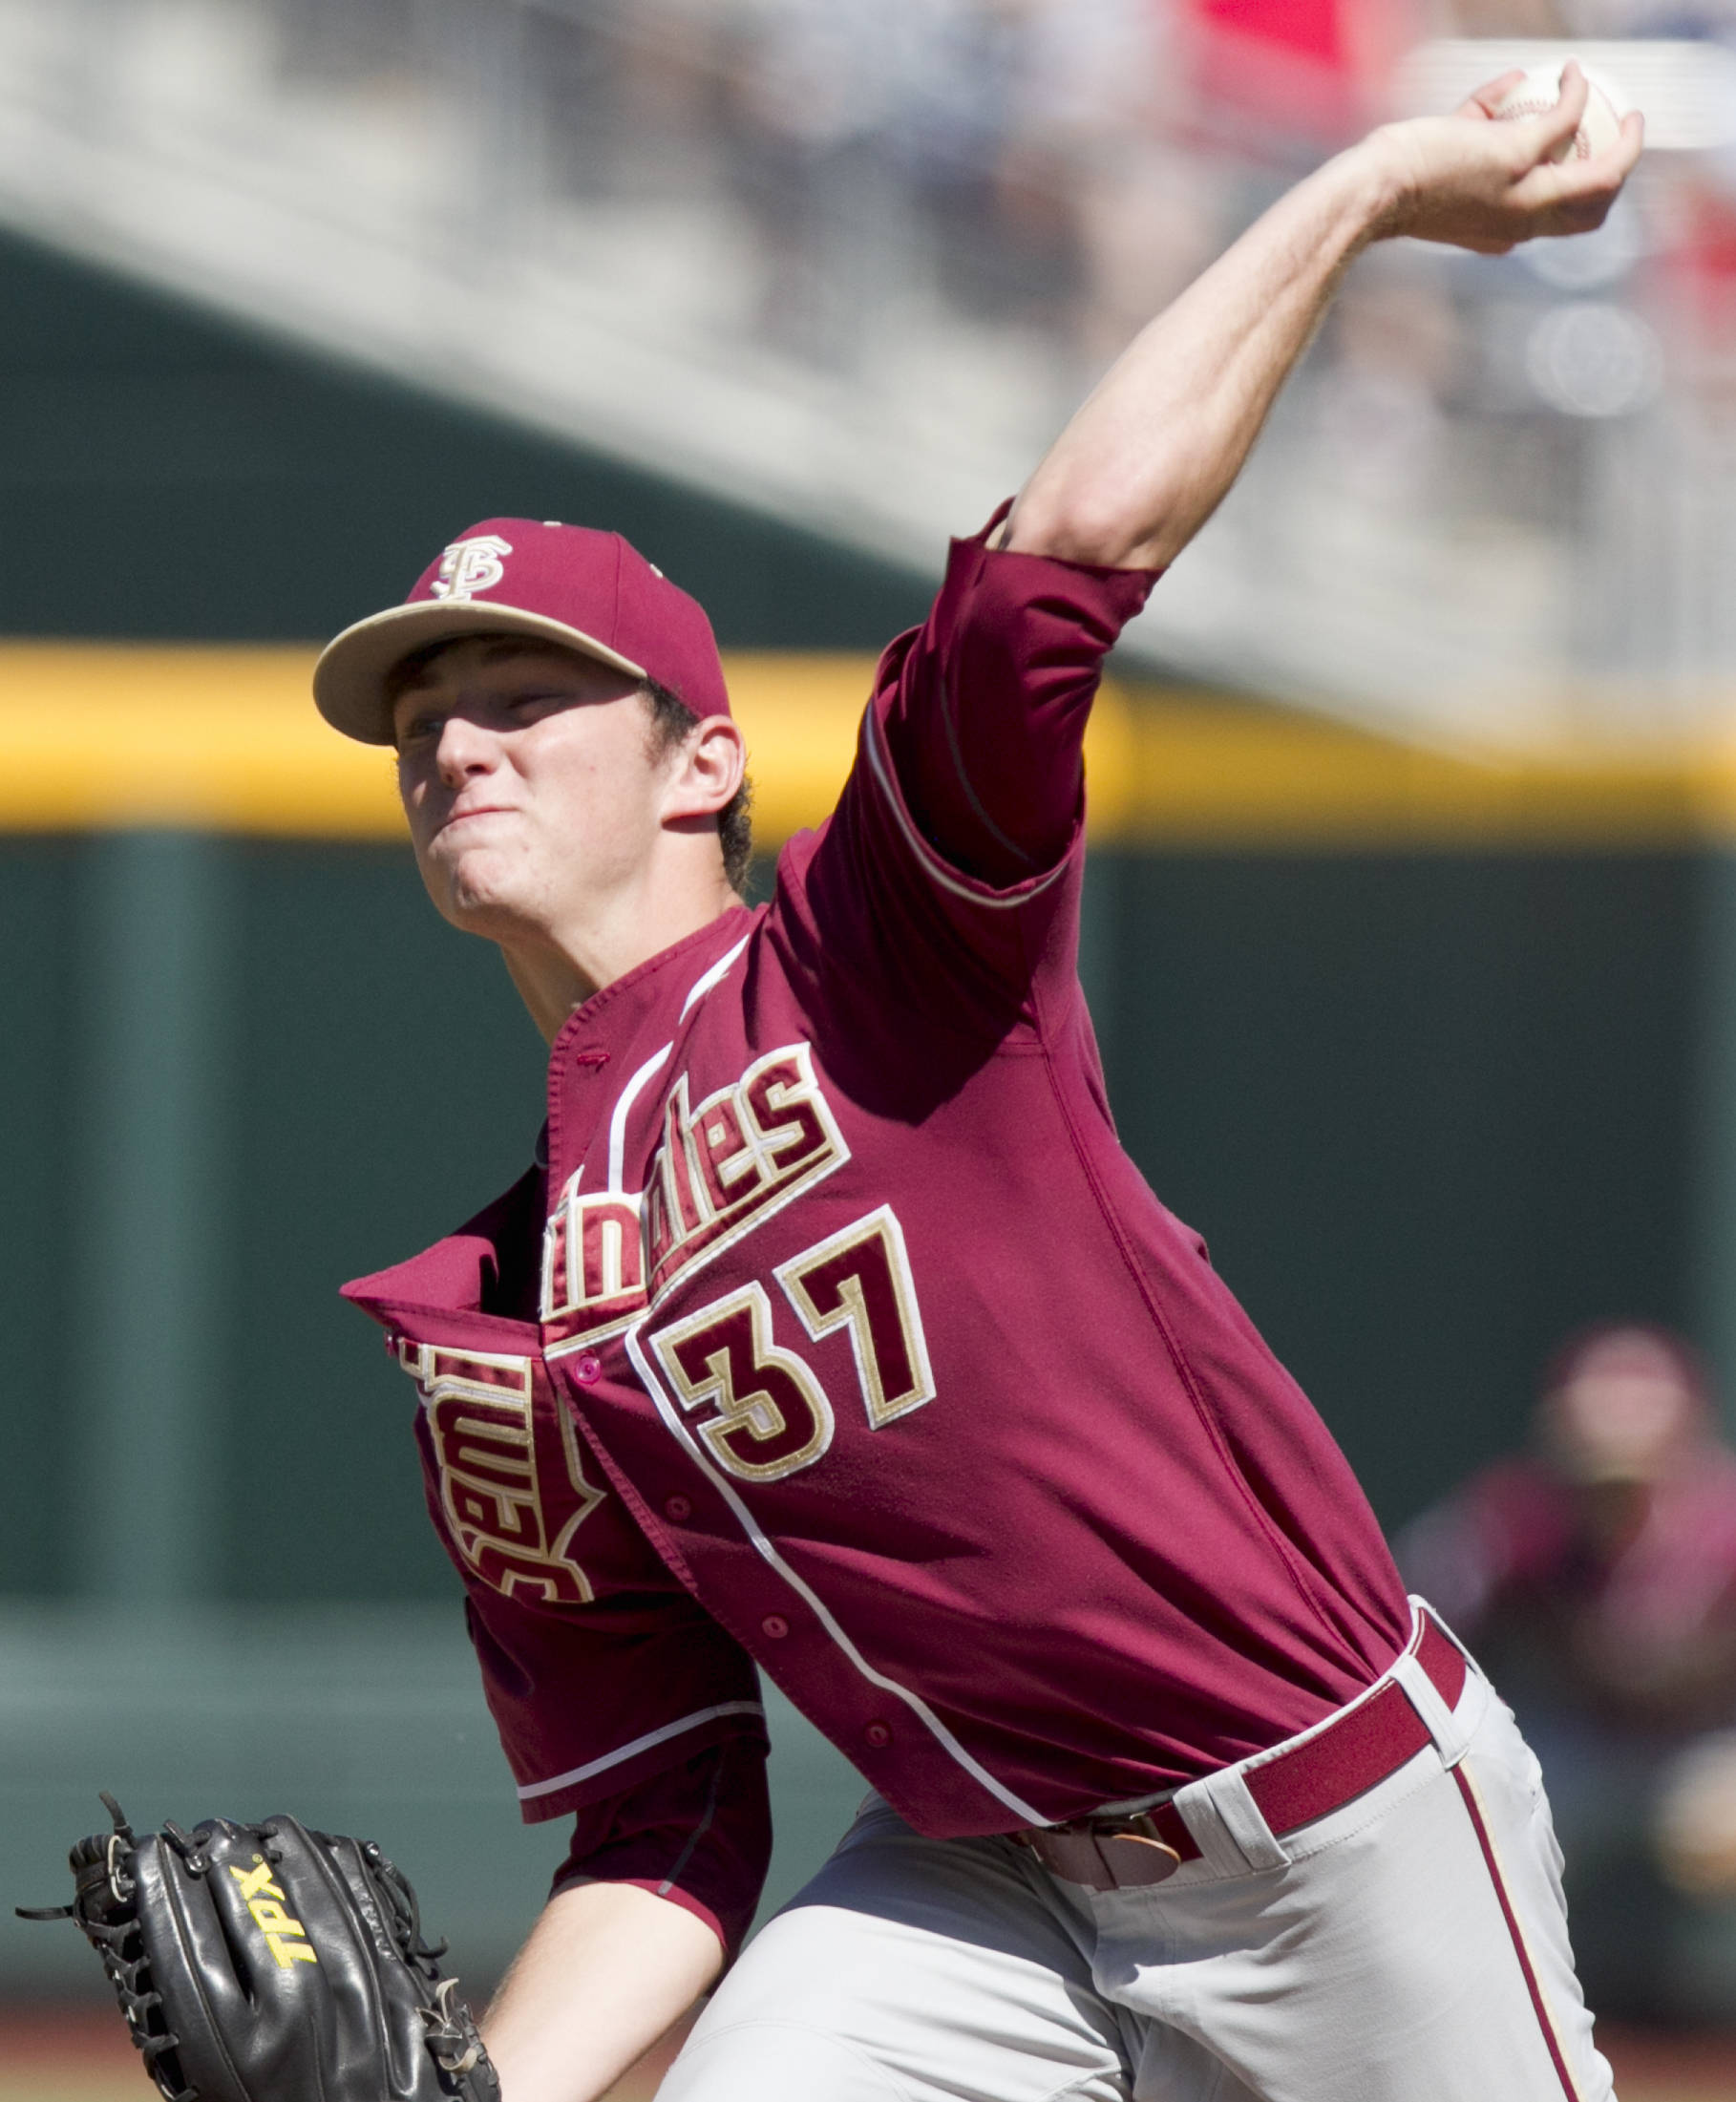 Florida State starting pitcher Brandon Leibrandt delivers against Arizona in the first inning. (AP Photo/Nati Harnik)